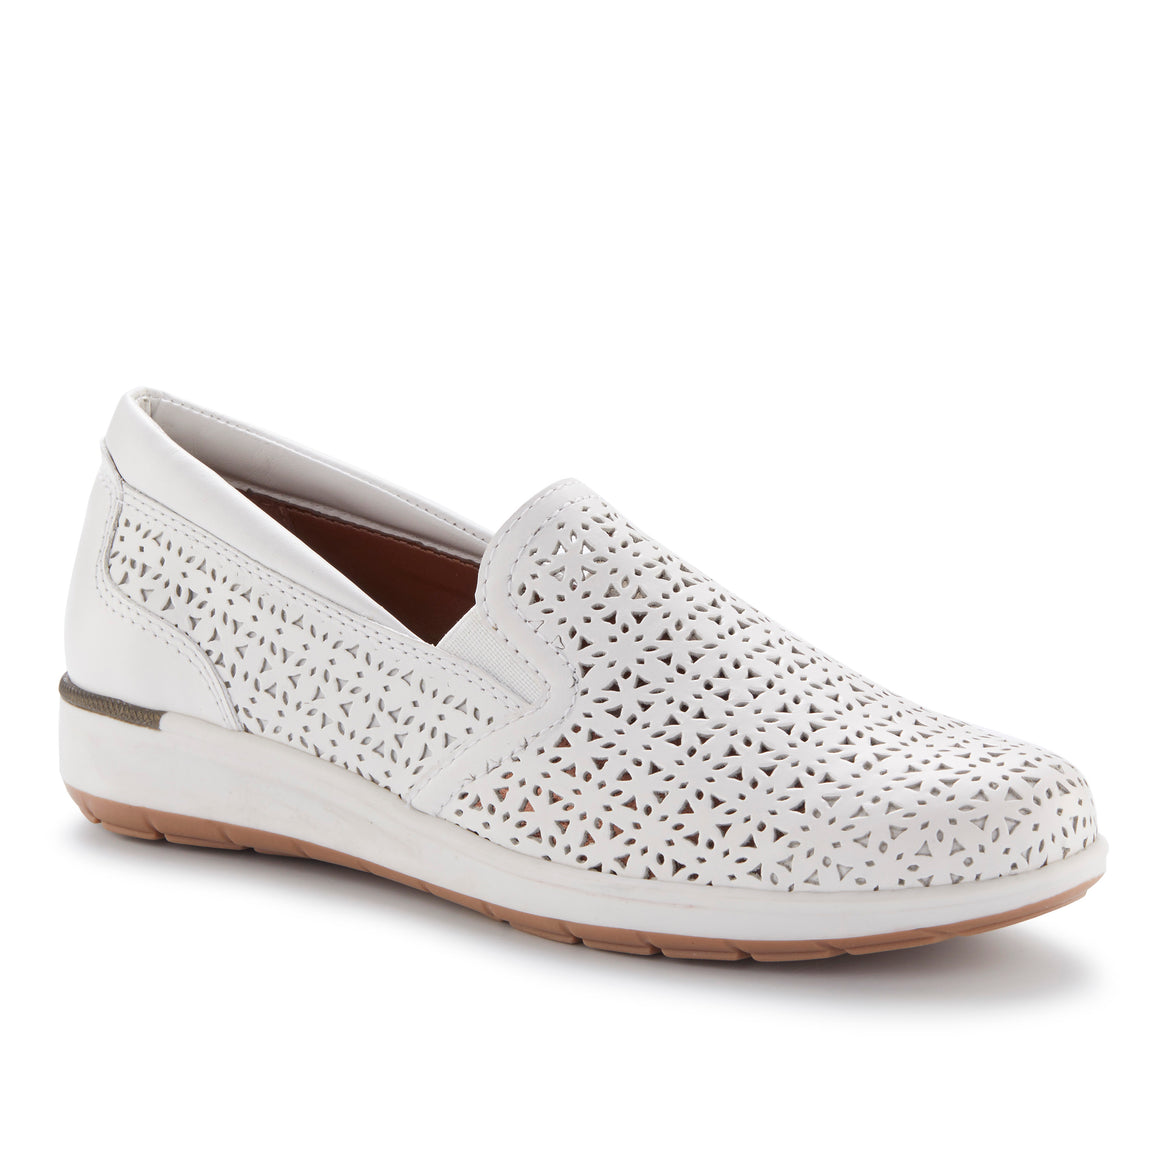 Orleans: White Perfed Nubuck NEW